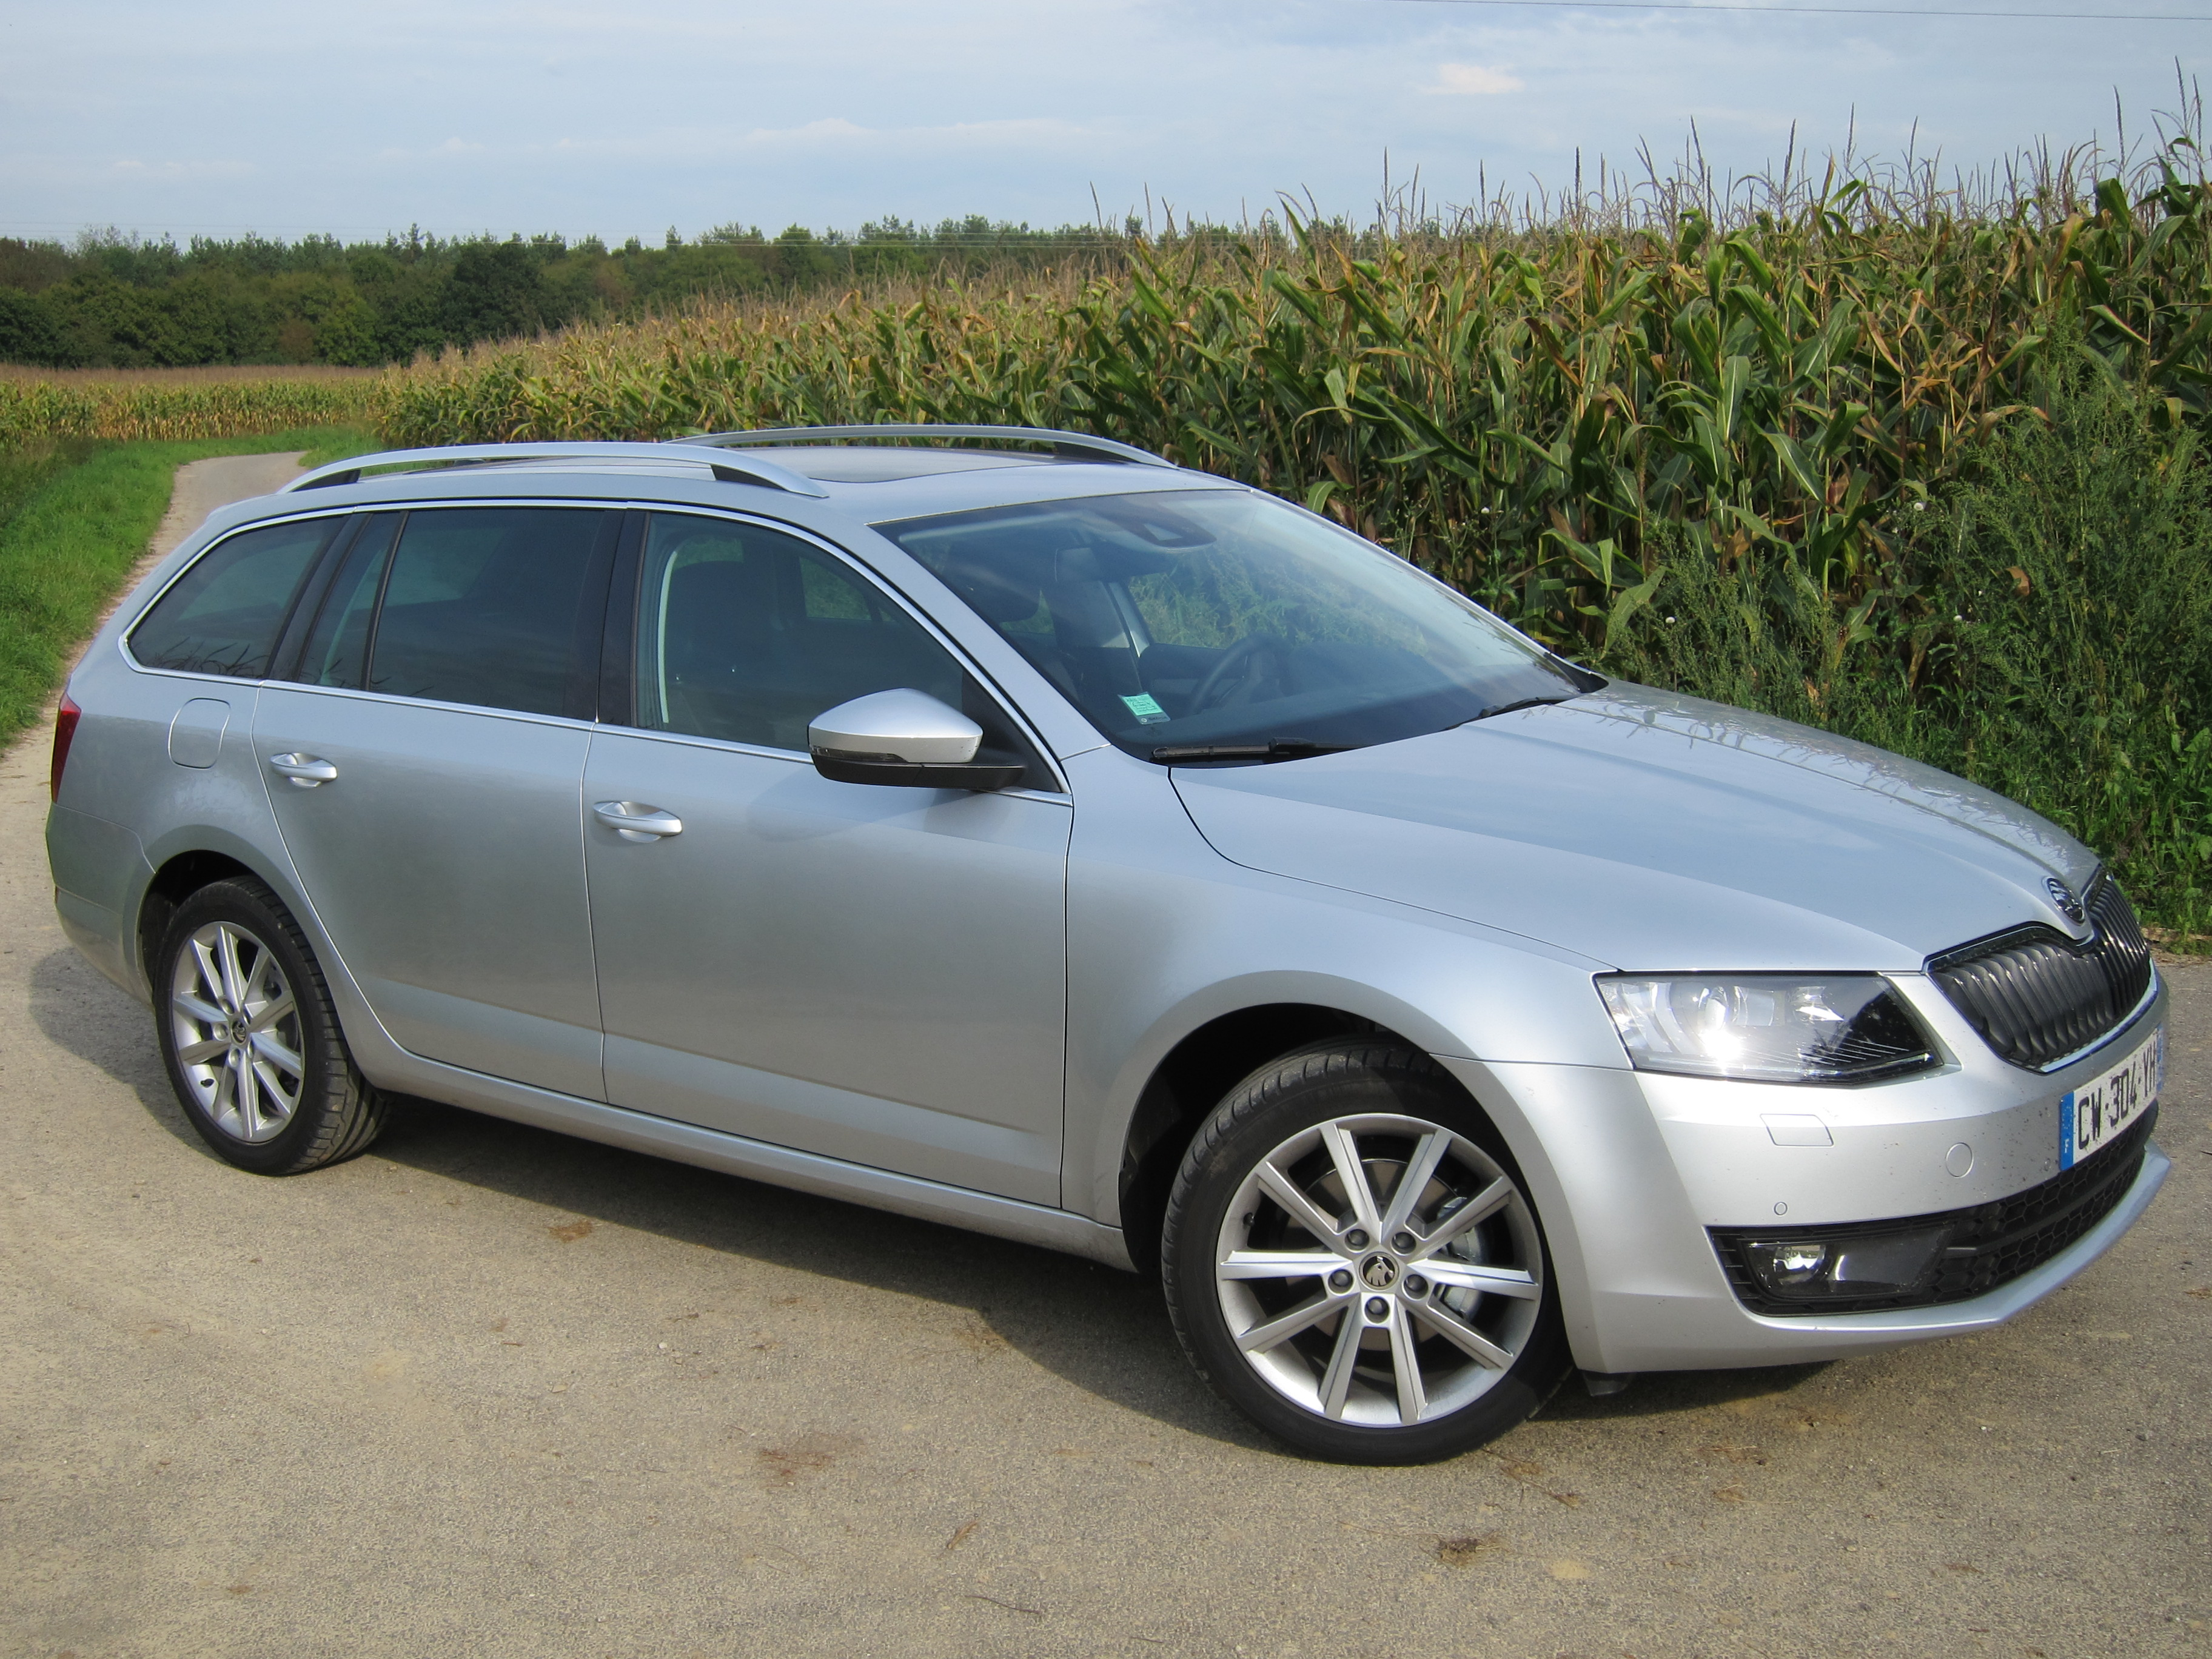 essai skoda octavia 1 6 tdi 105 combi rationnelle un peu beaucoup passio. Black Bedroom Furniture Sets. Home Design Ideas